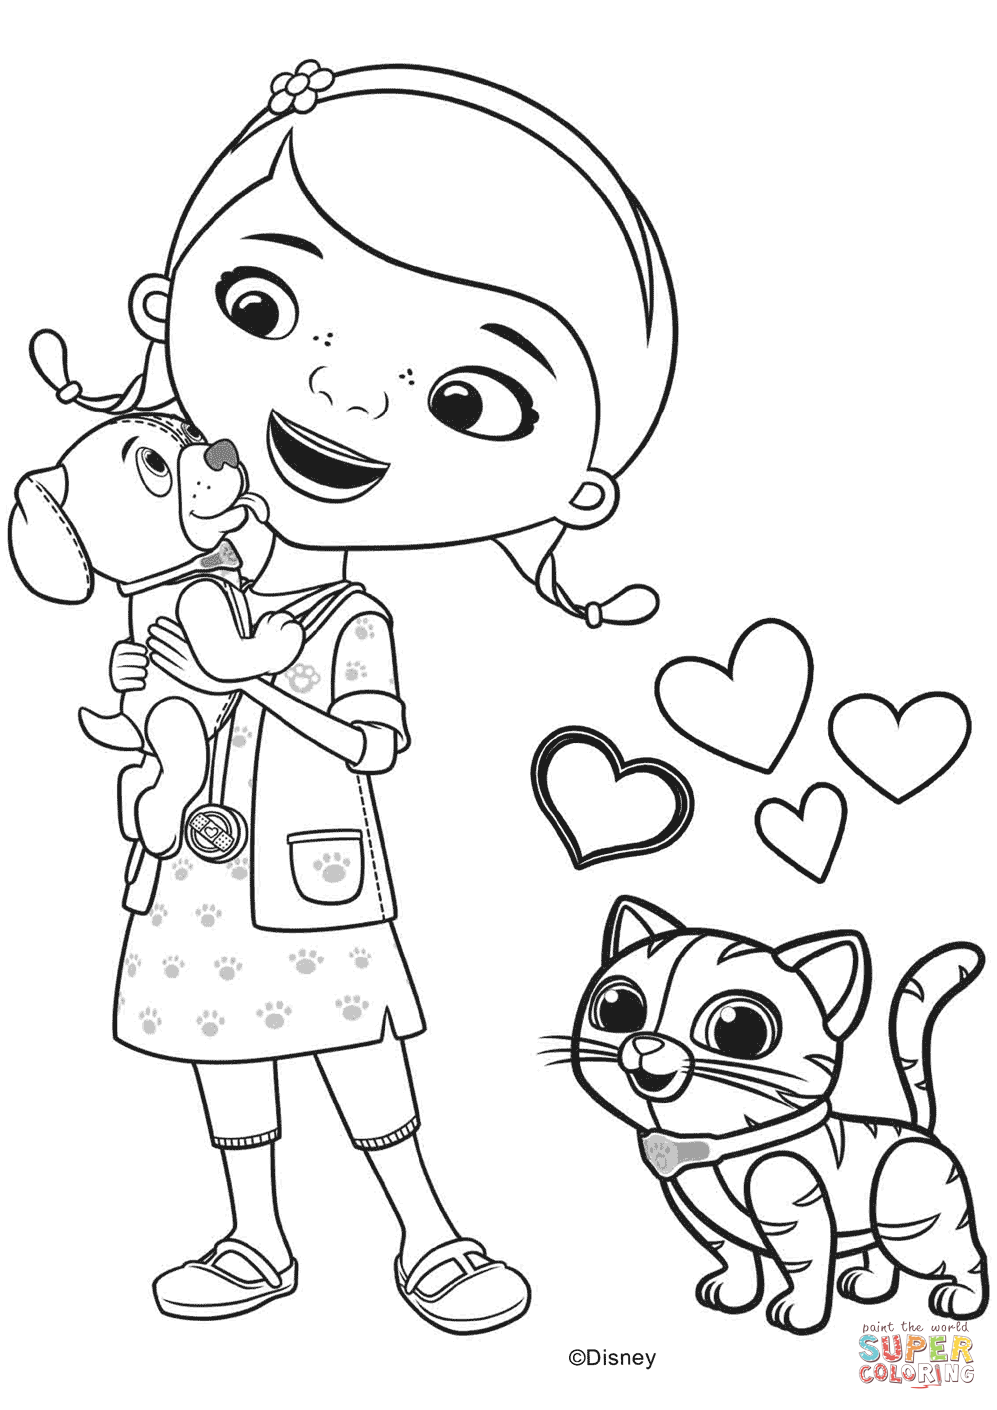 Click the doc mcstuffins with findo and whispers coloring pages to view printable version or color it online compatible with ipad and android tablets